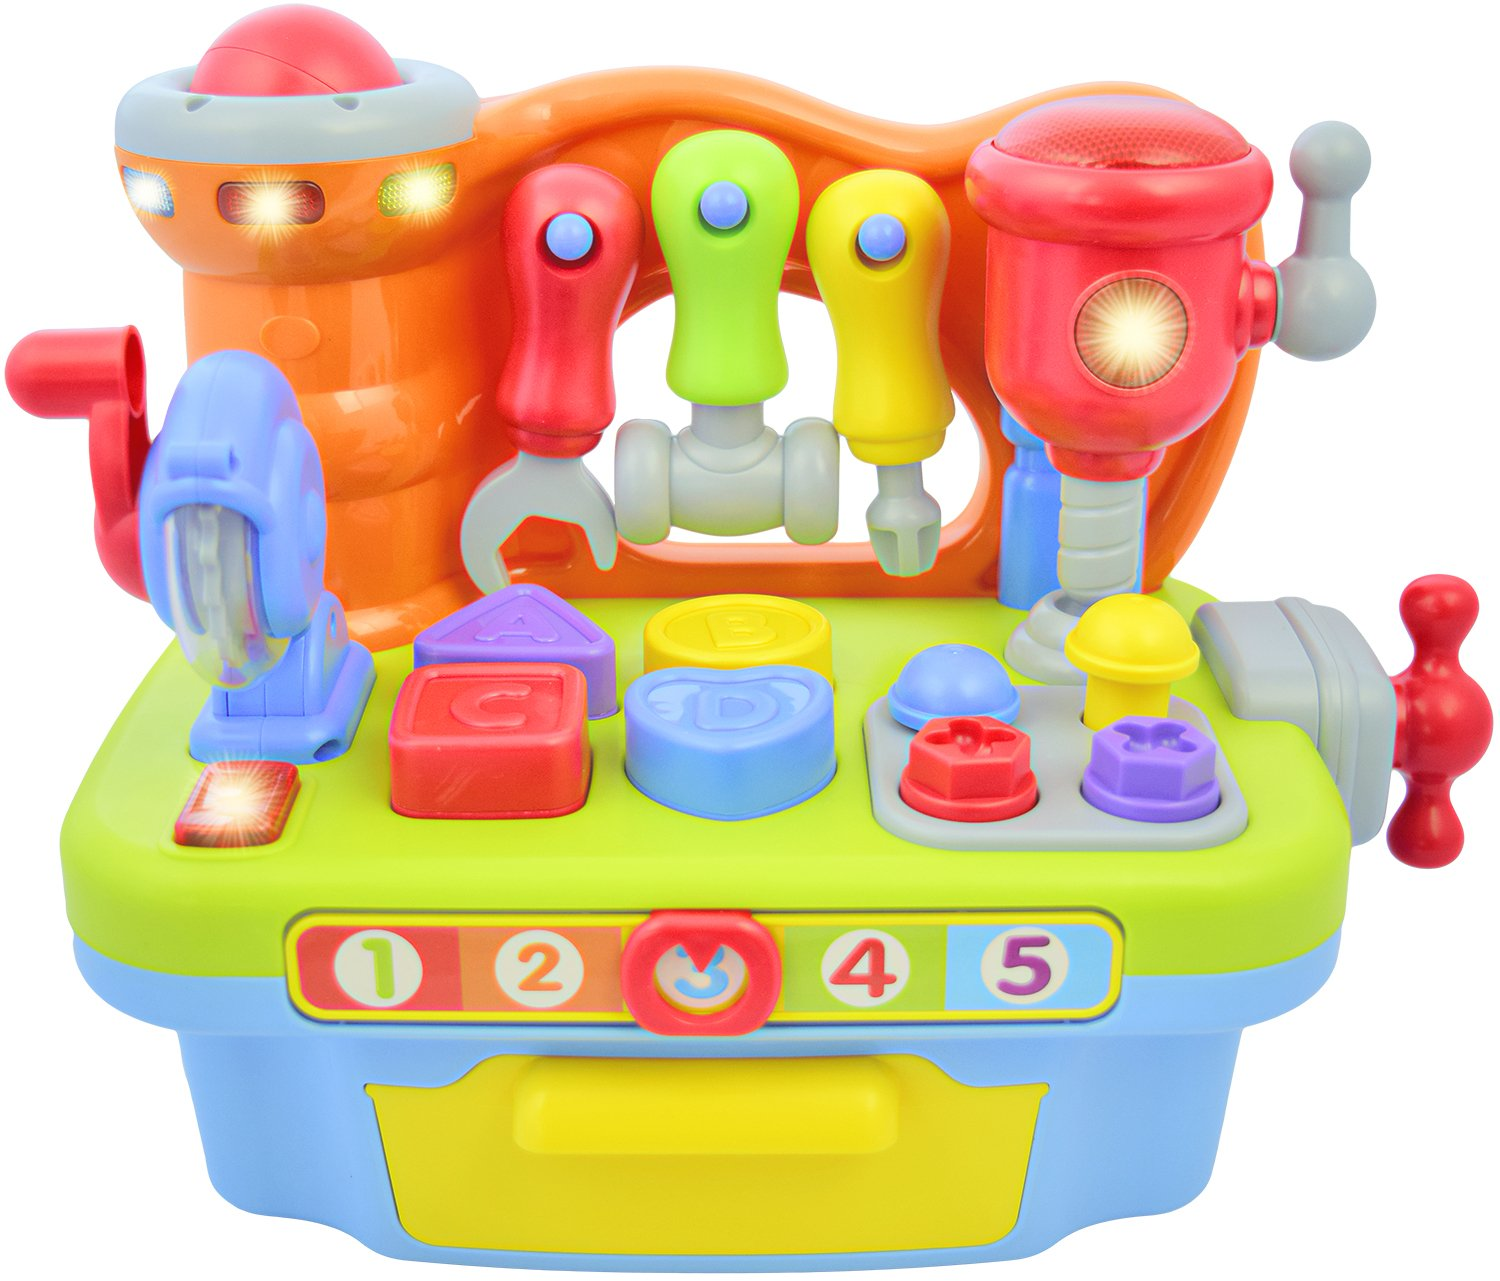 Deluxe Toy Workshop Playset for Kids with Interactive Sounds & Lights | Great Educational Learning Toy for Teaching Colors, Shapes, Numbers, and The Alphabet | Great Gift for Toddler Boys & Girls by CoolToys (Image #4)